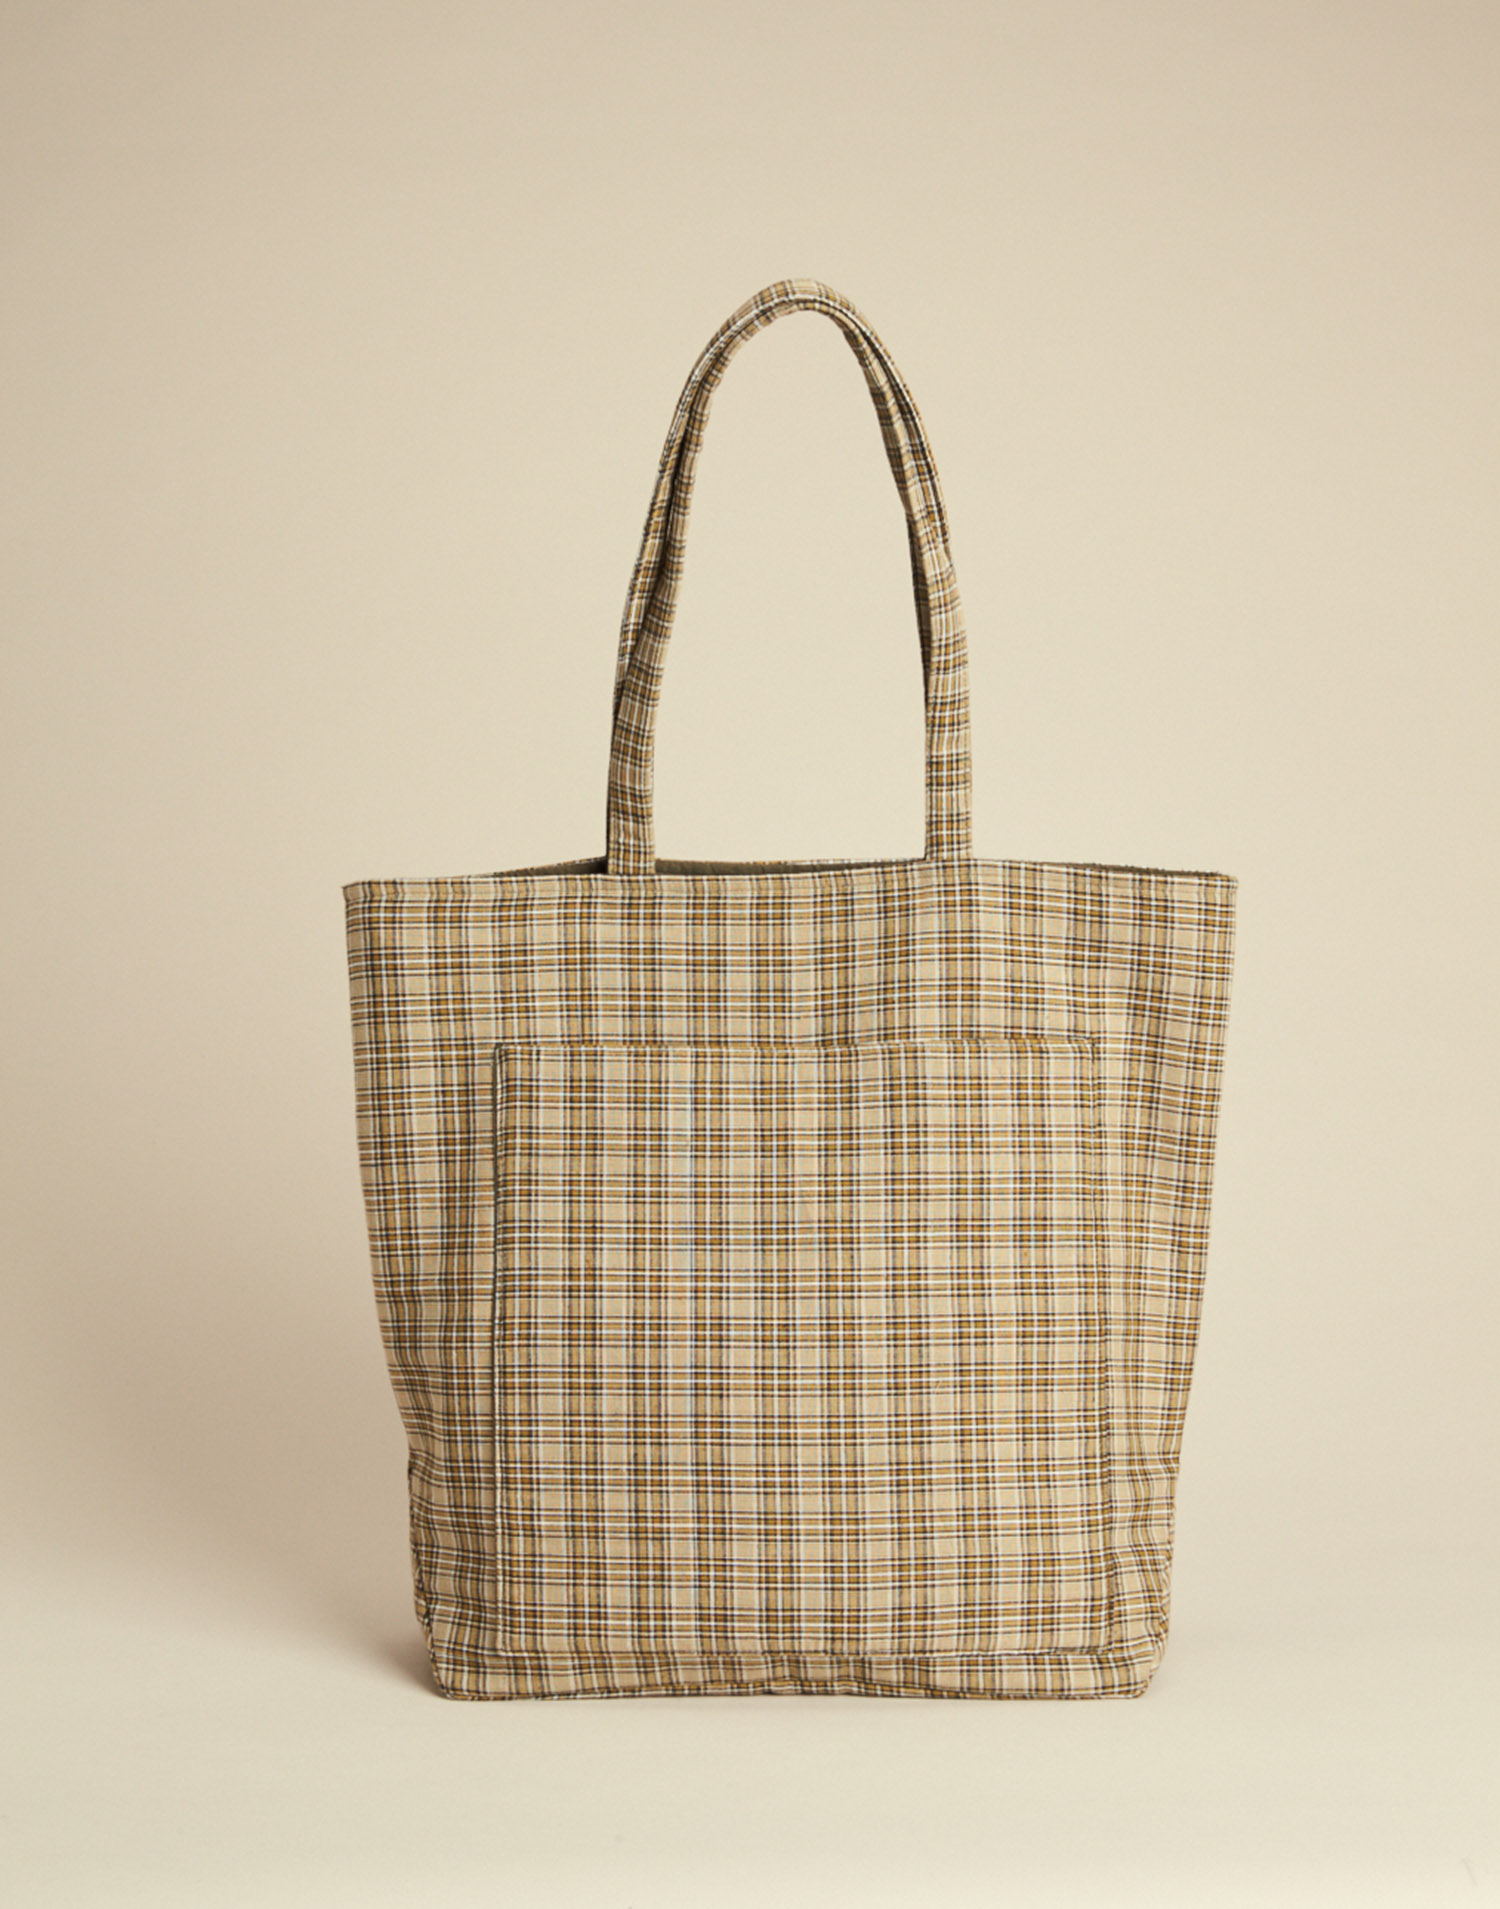 SQUARED TOTEBAG WITH ZIPPER